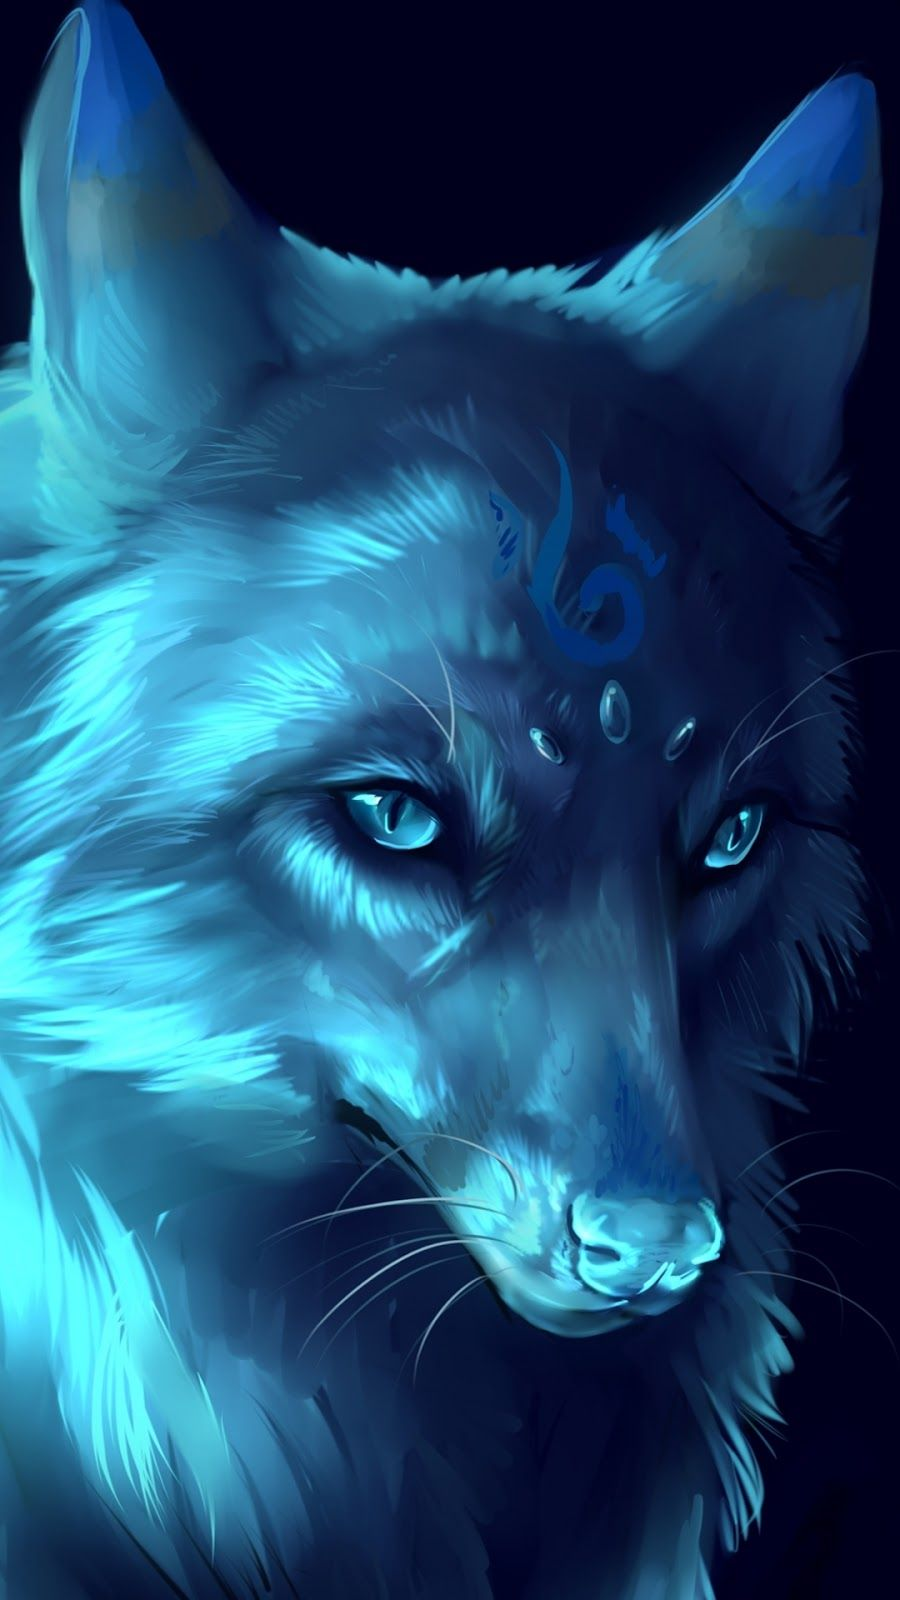 900x1600 Top 4 animated wolf iphone wallpaper - Sweety Wallpapers